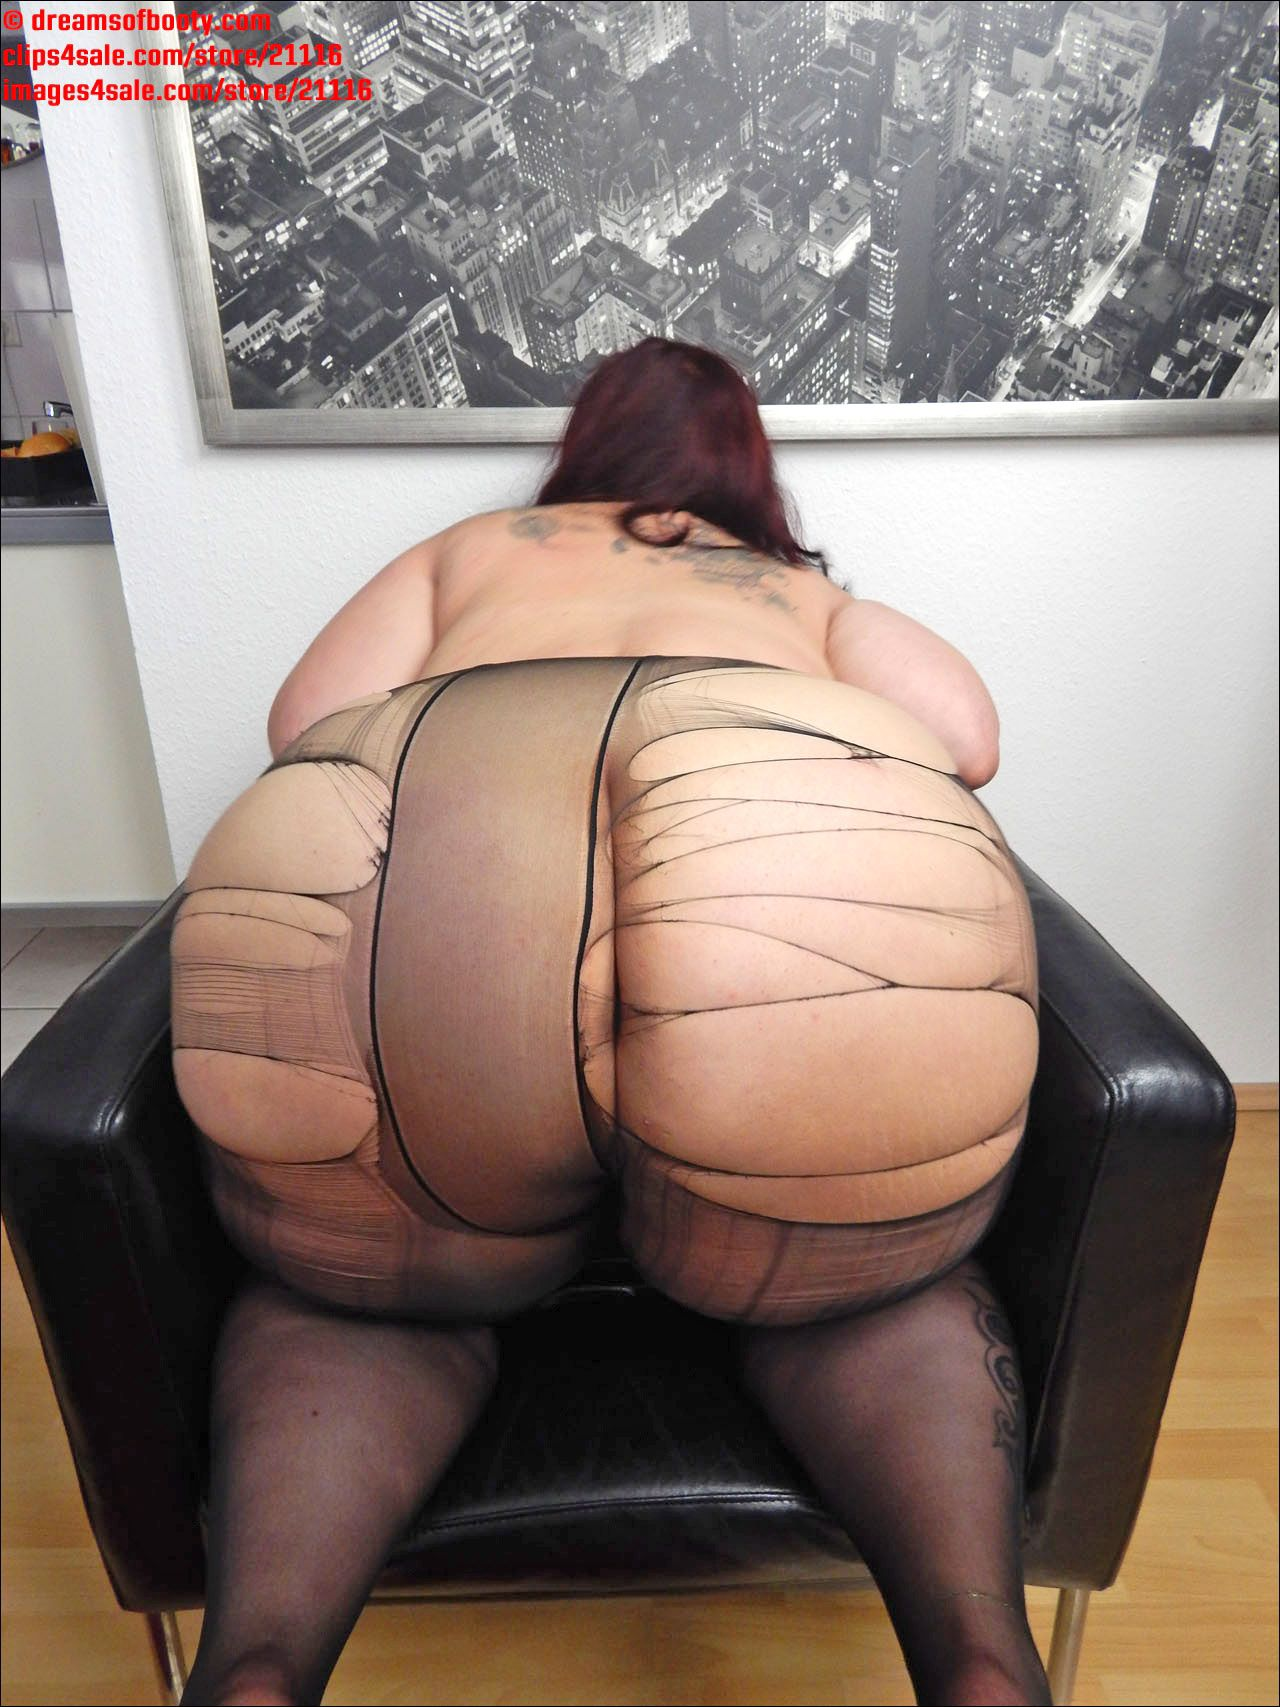 Guy bbw women in pantyhose